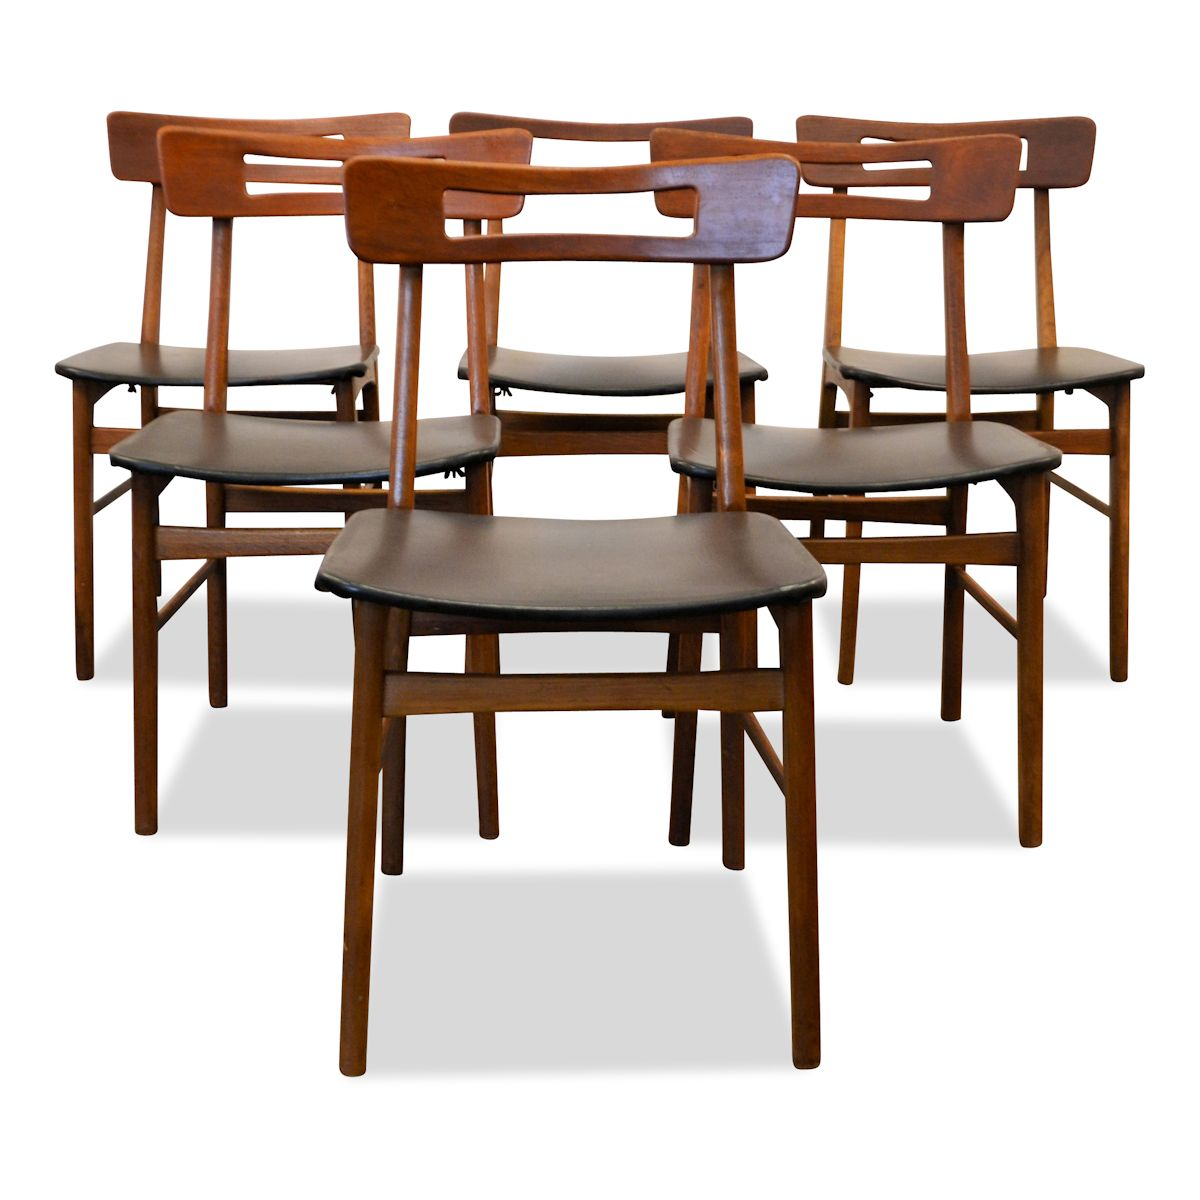 Vintage Teak Danish Modern Dining Chairs